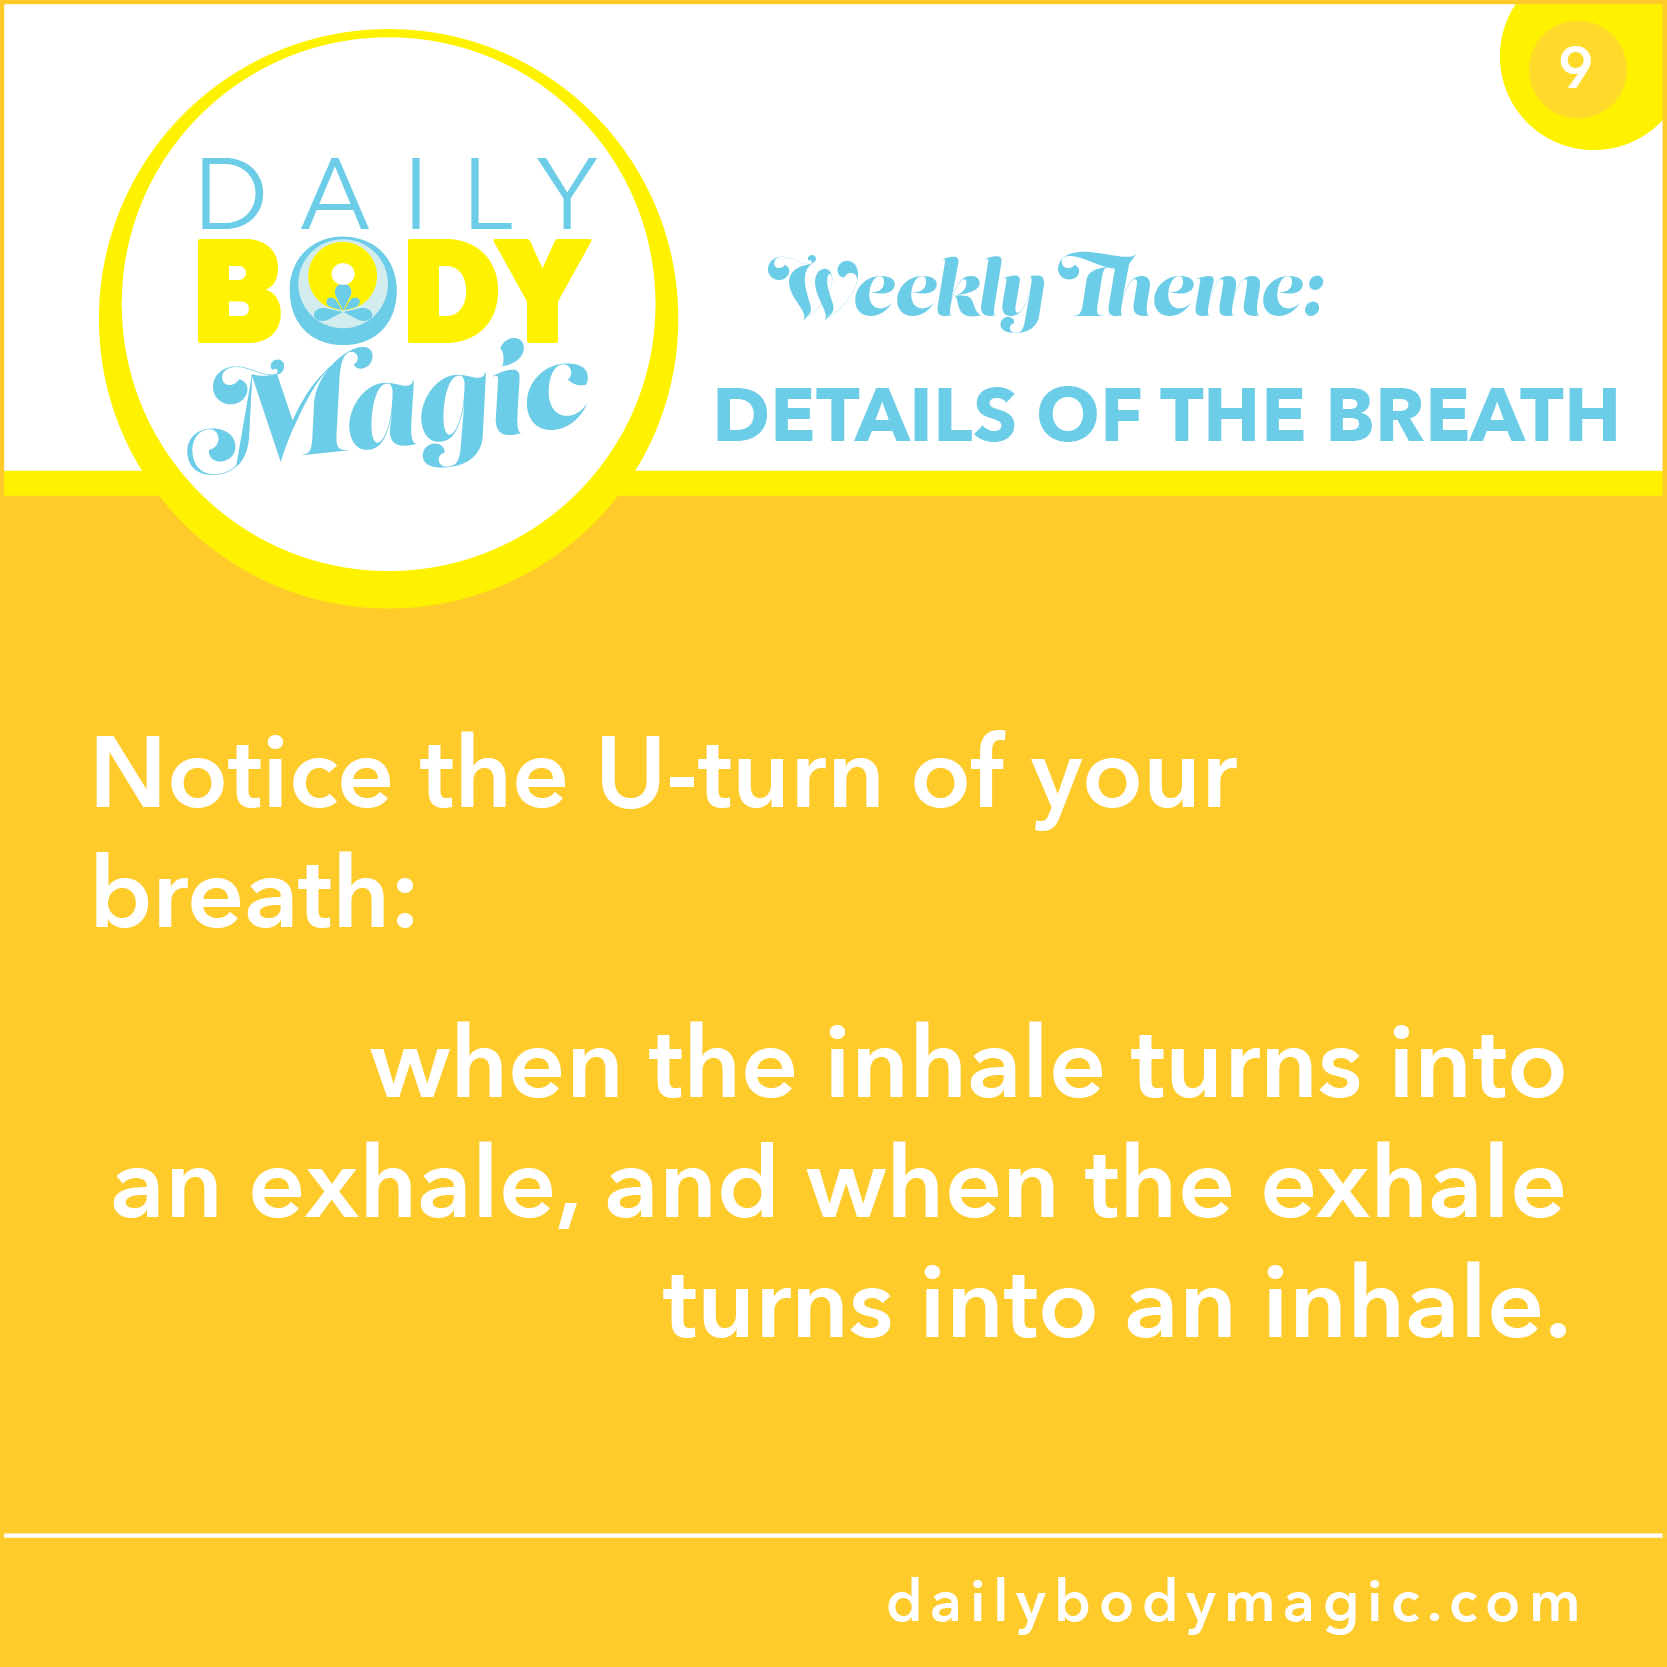 Daily Body Magic 9